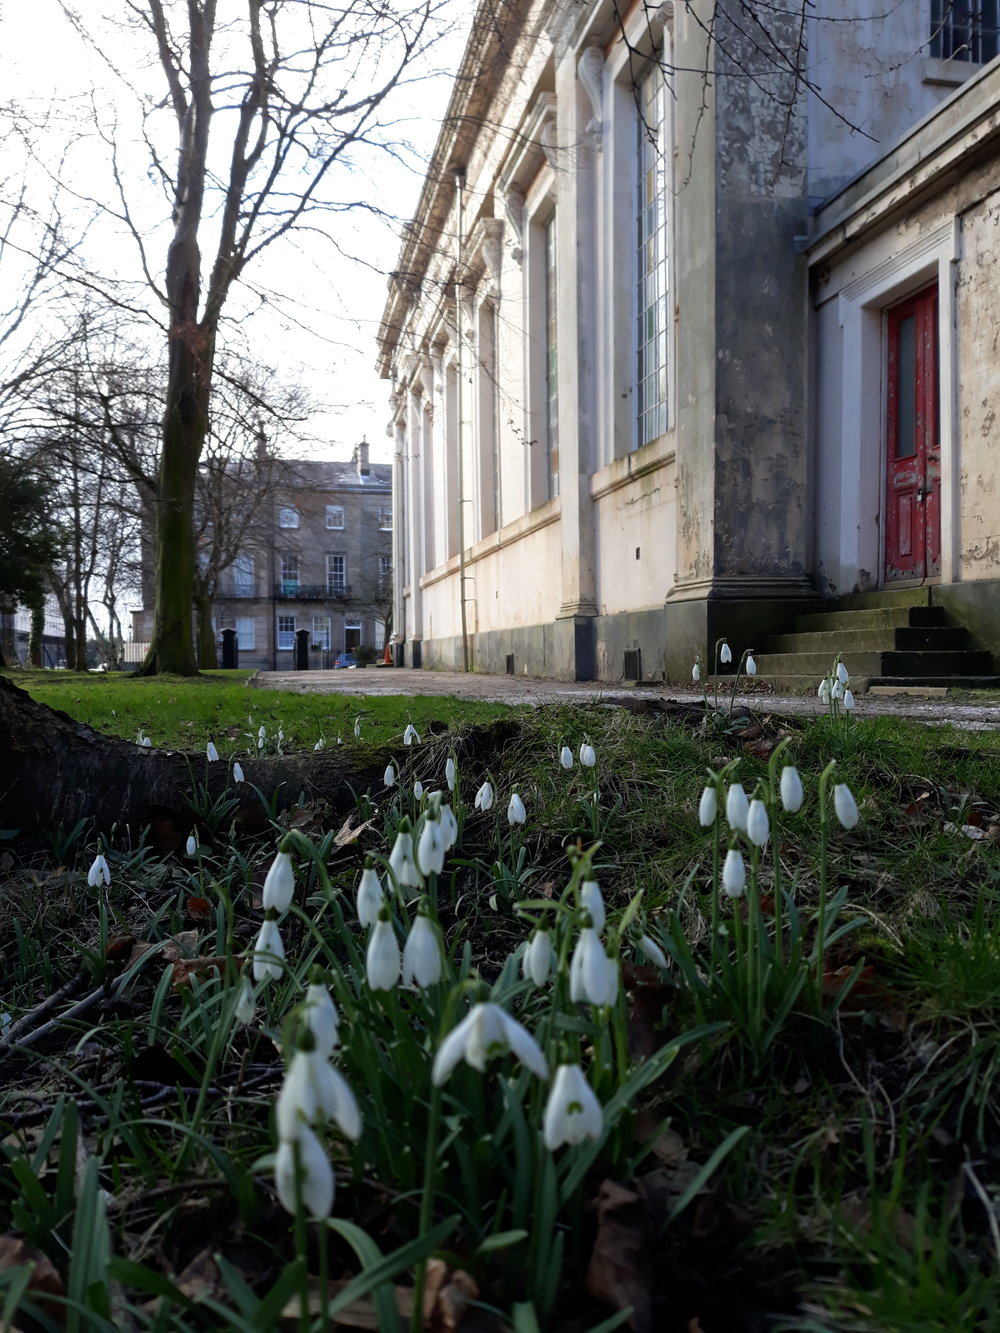 Snowdrops in Spring - a symbol of St Bride